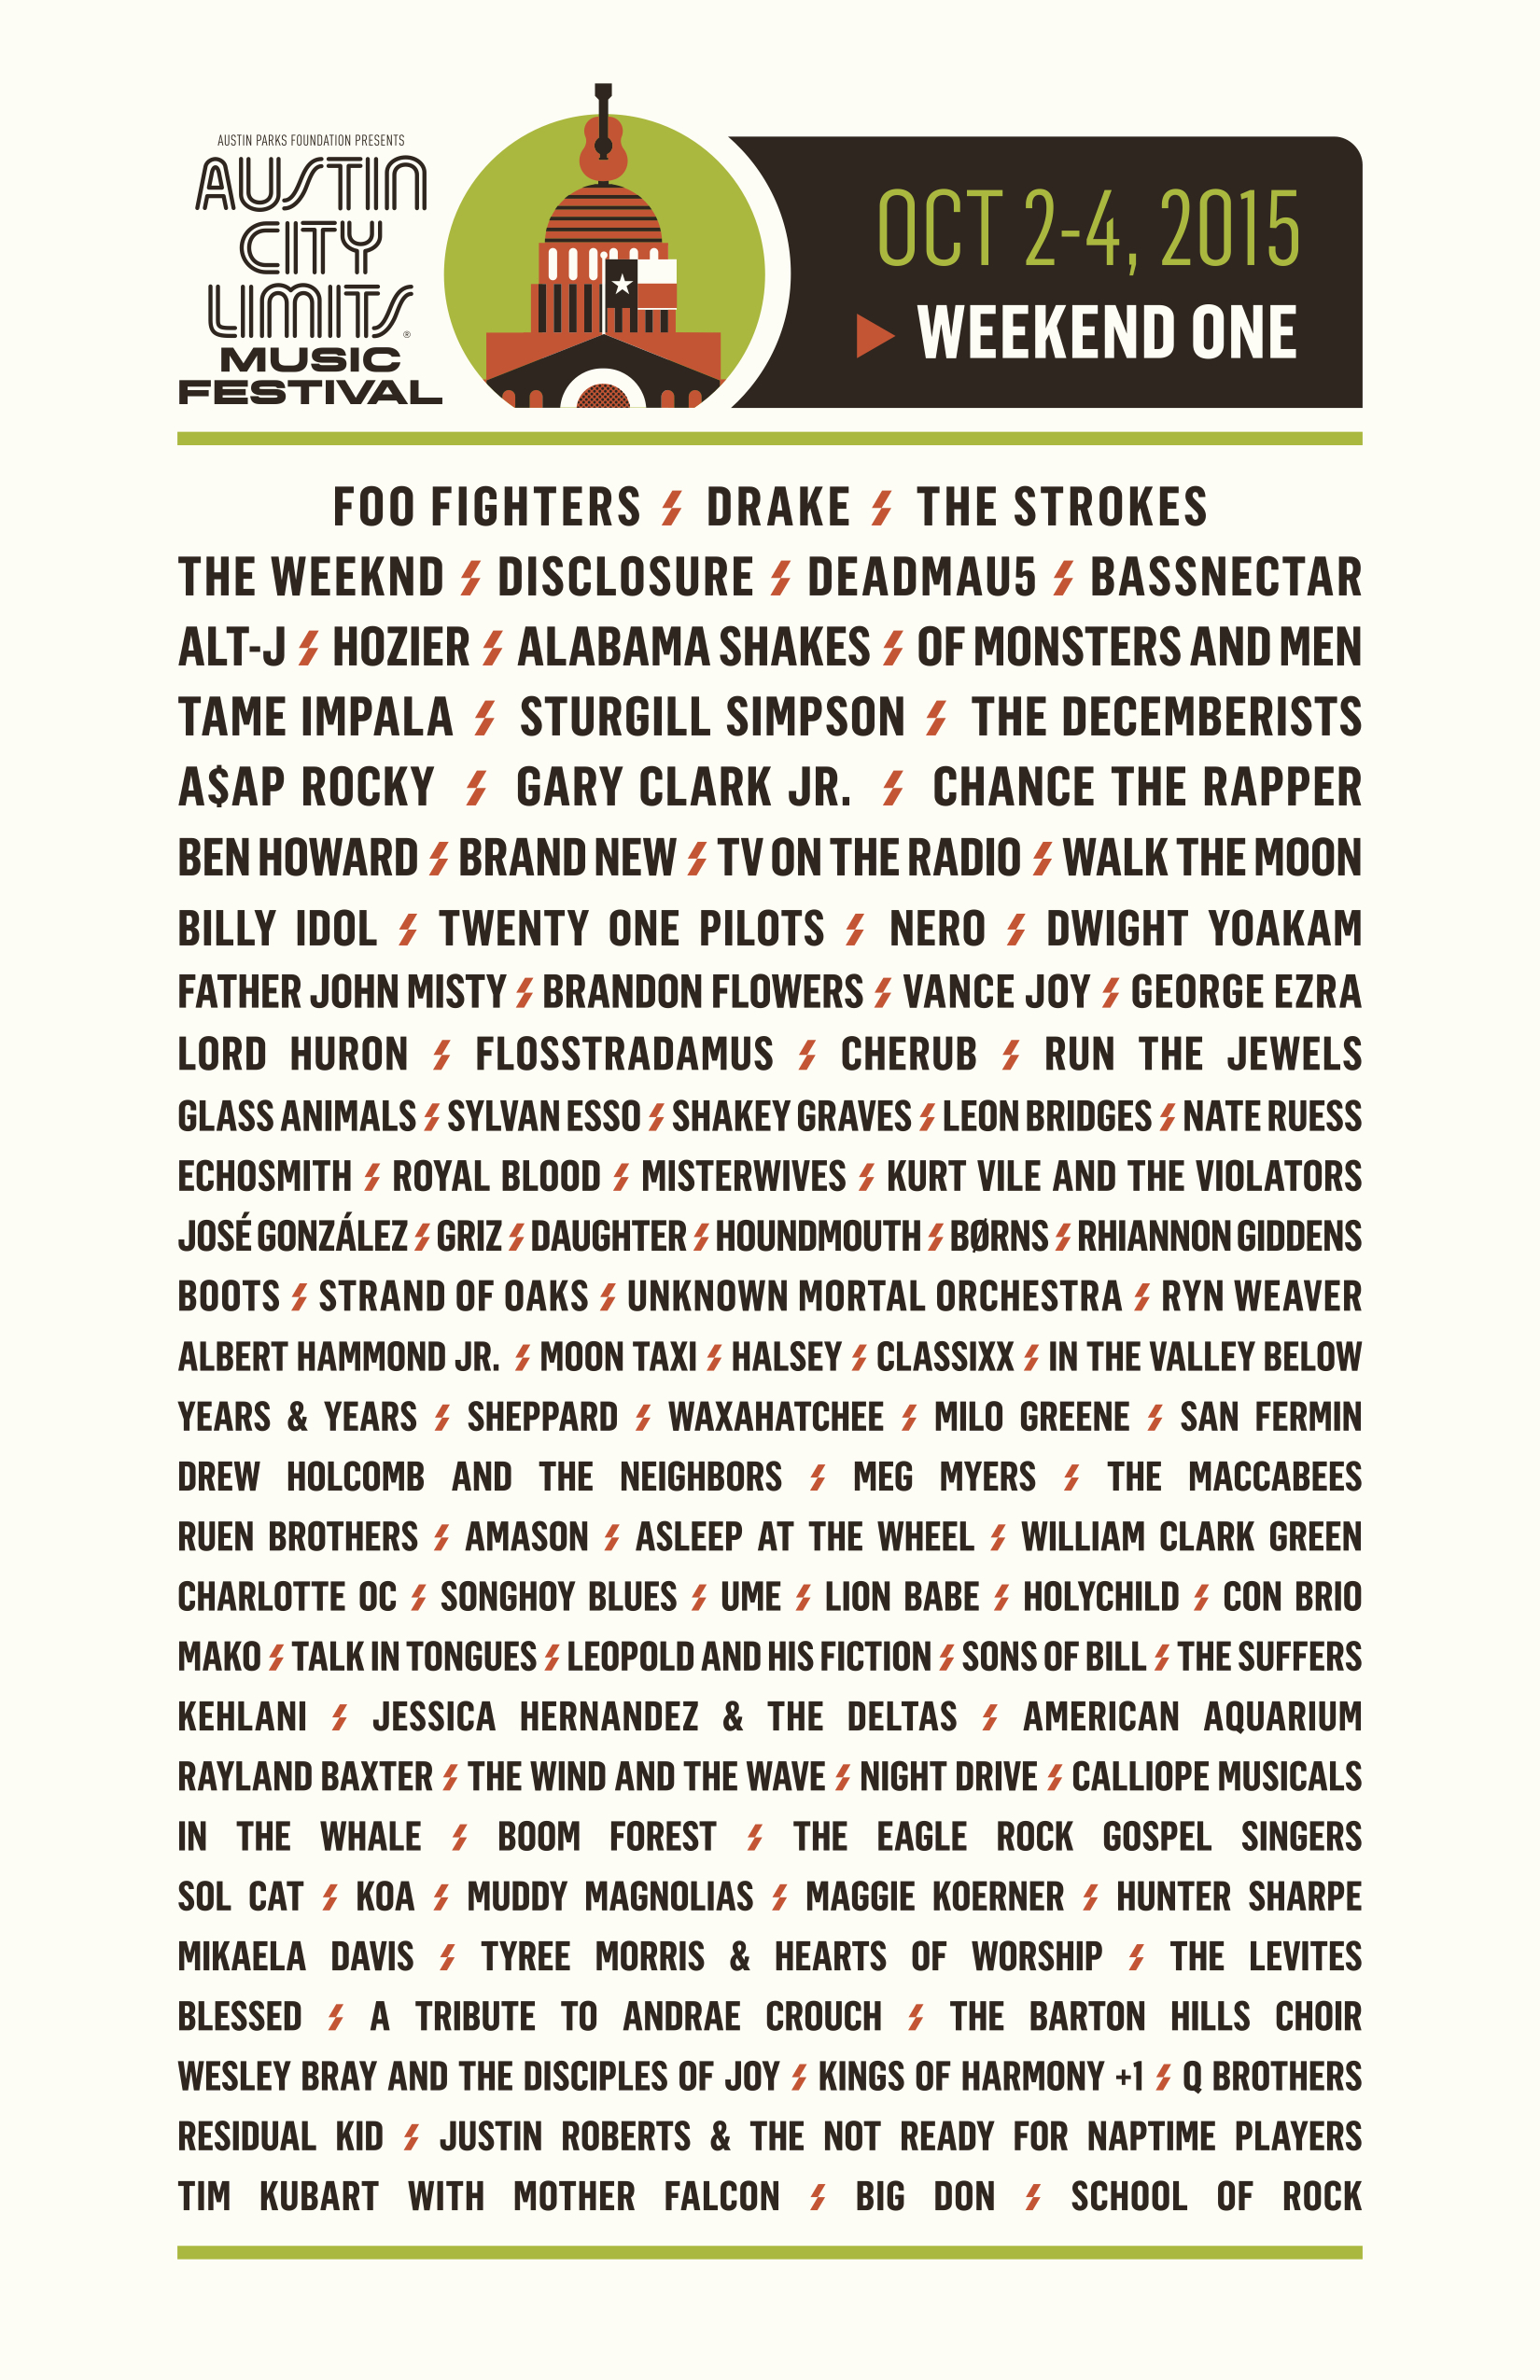 acl weekend 1